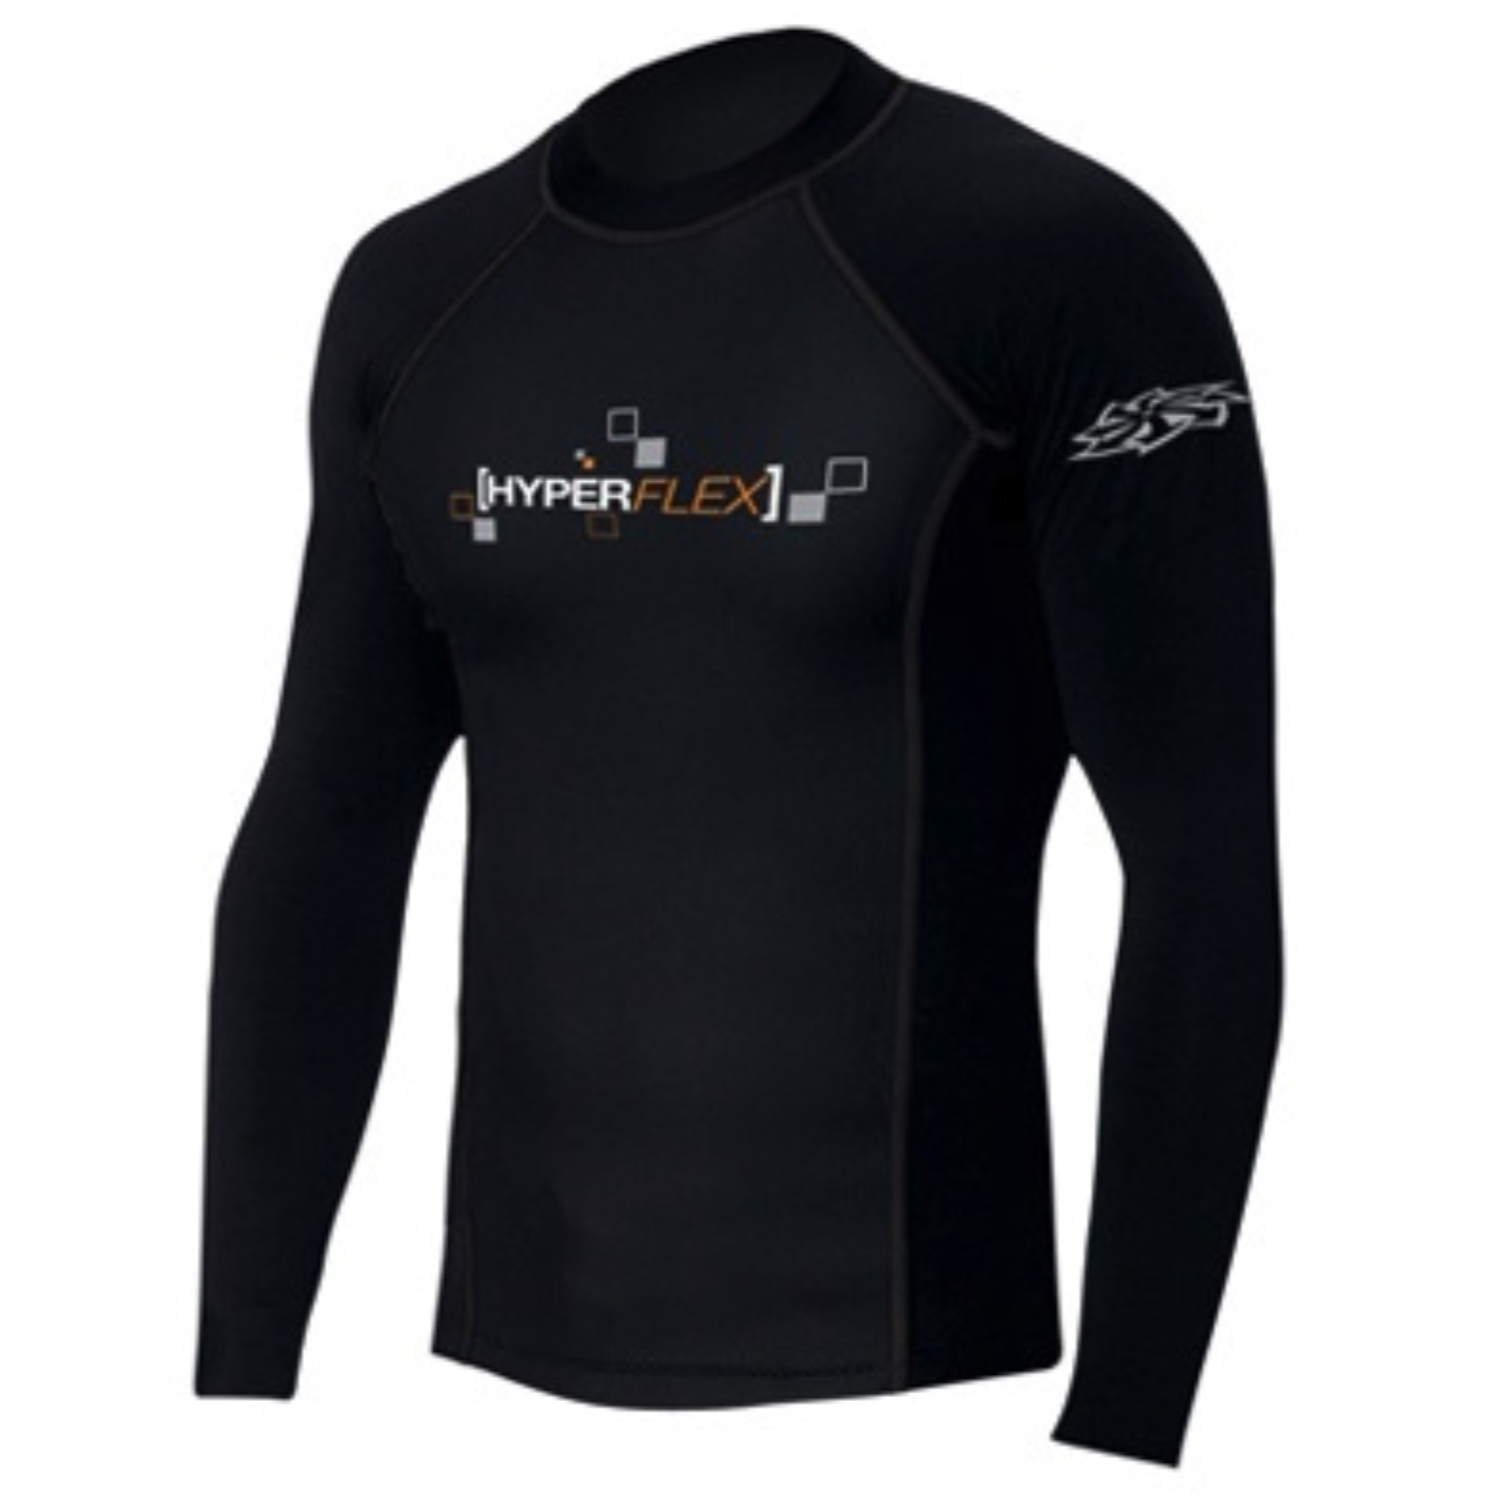 Hyperflex Polyolefin Long Sleeve 50-50 Loose Fit Rash Guard - BK - L